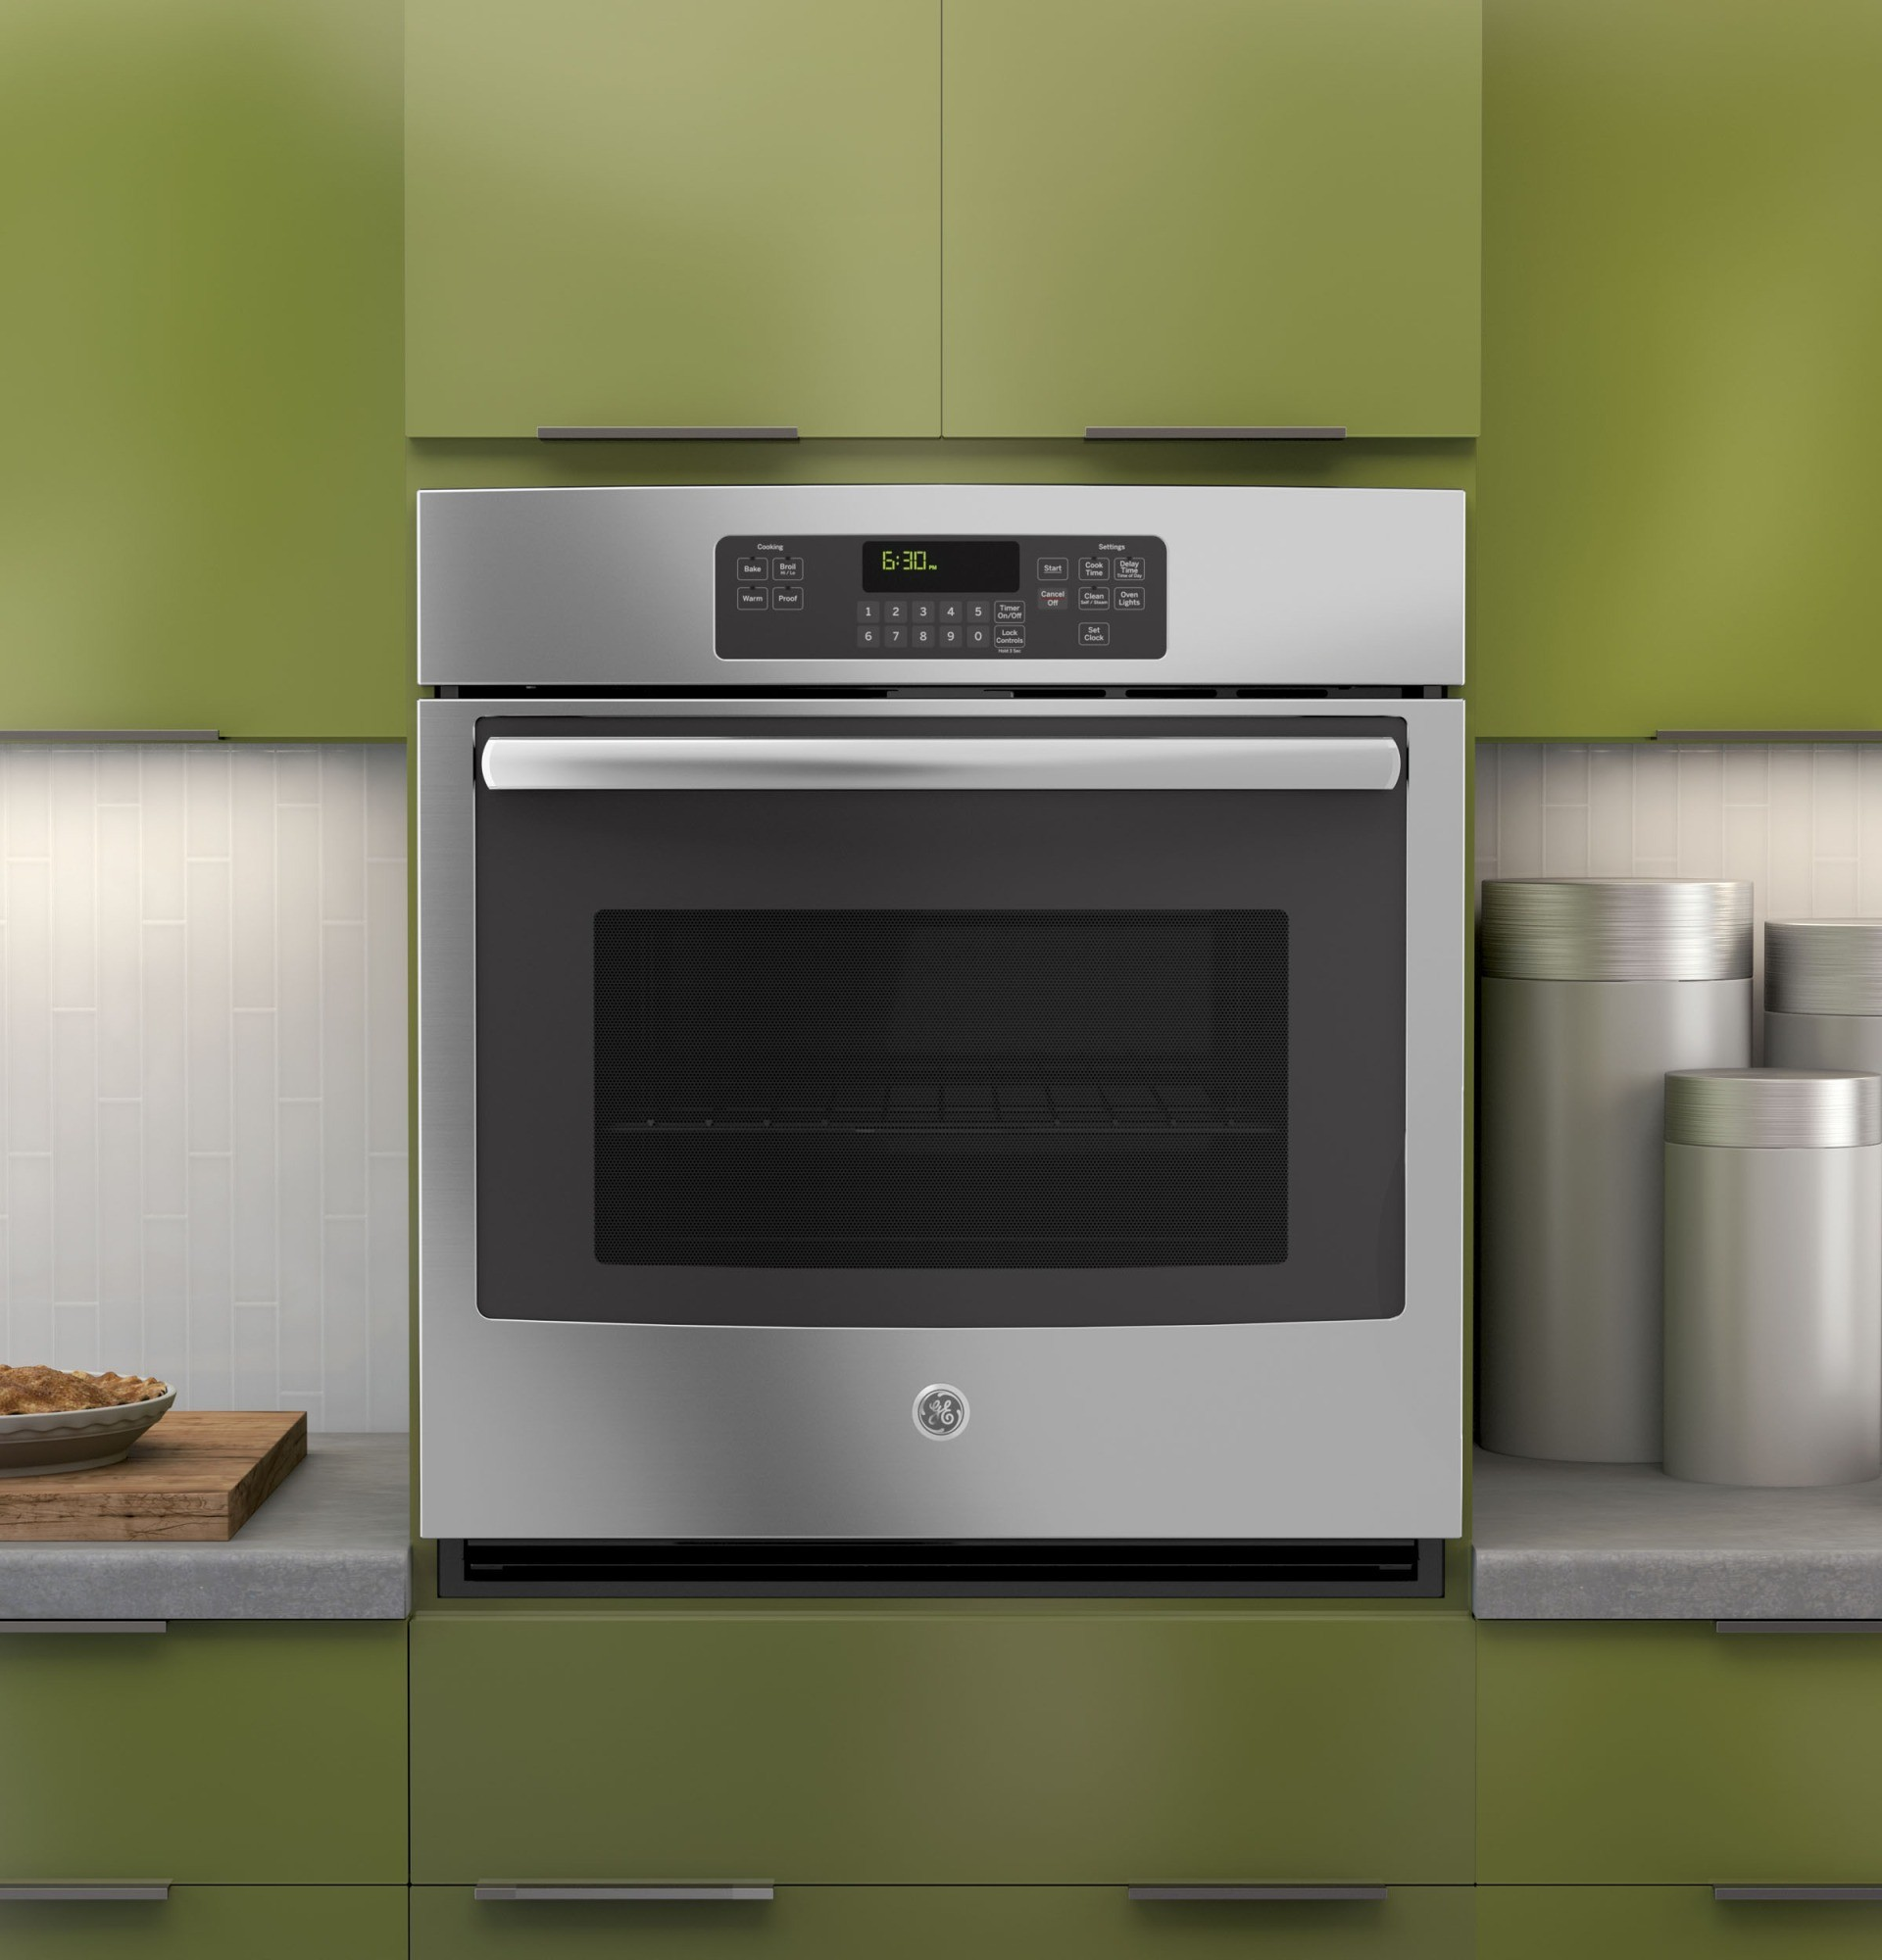 Jk3000sfss Ge 27 Quot Built In Single Wall Oven Stainless